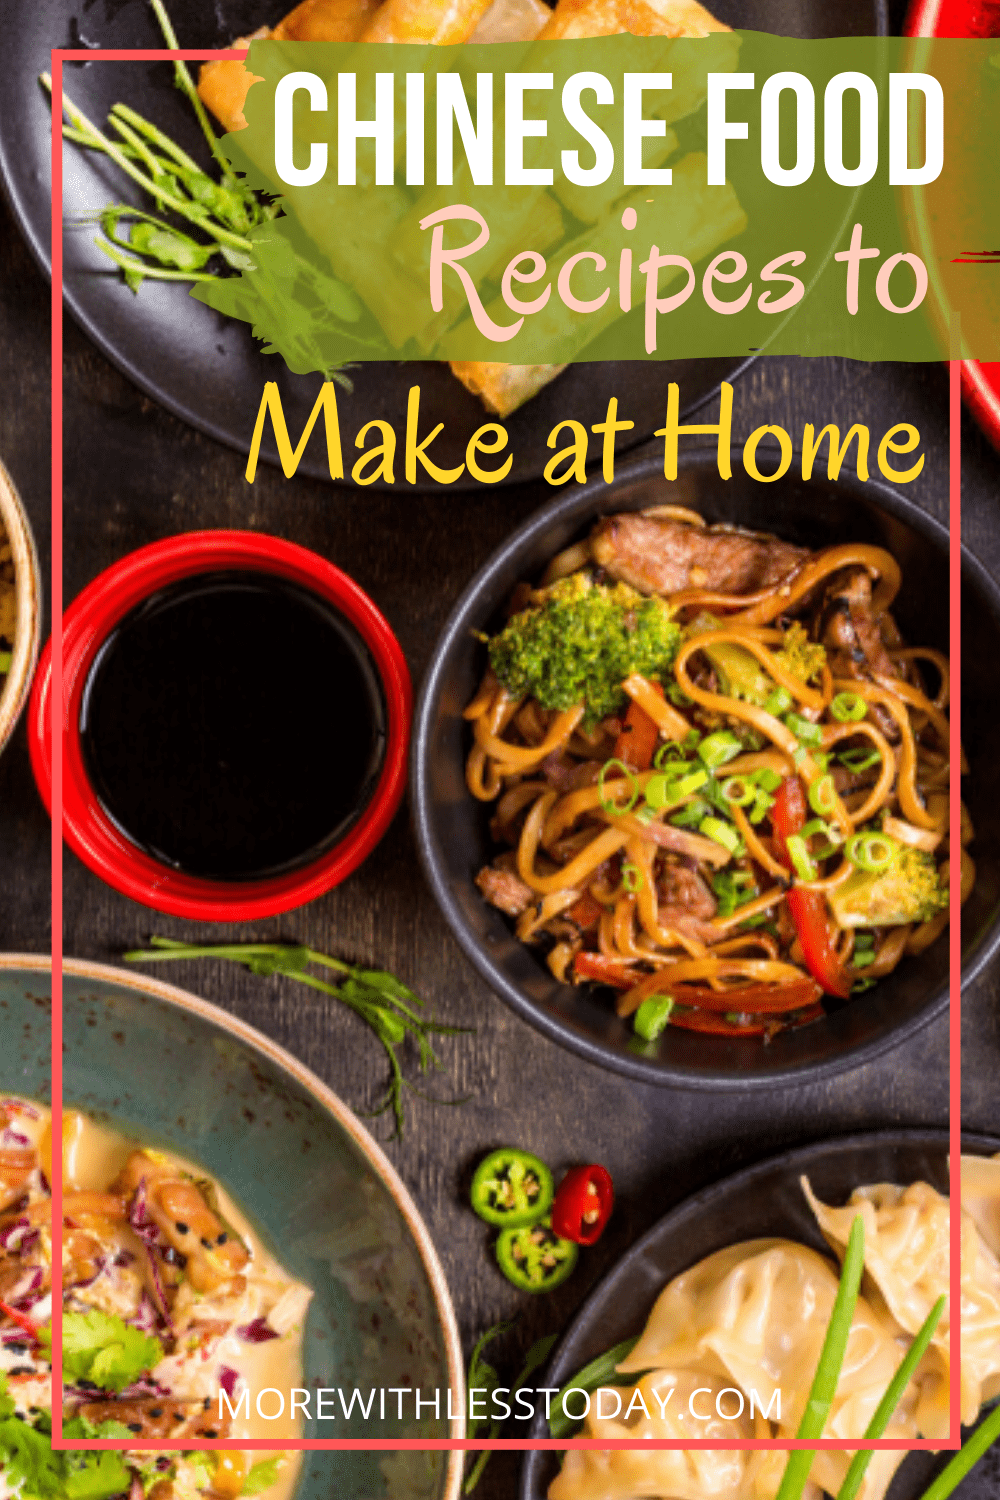 Chinese Food Recipes In 2020 Easy Chinese Recipes Spicy Recipes Cooking Recipes